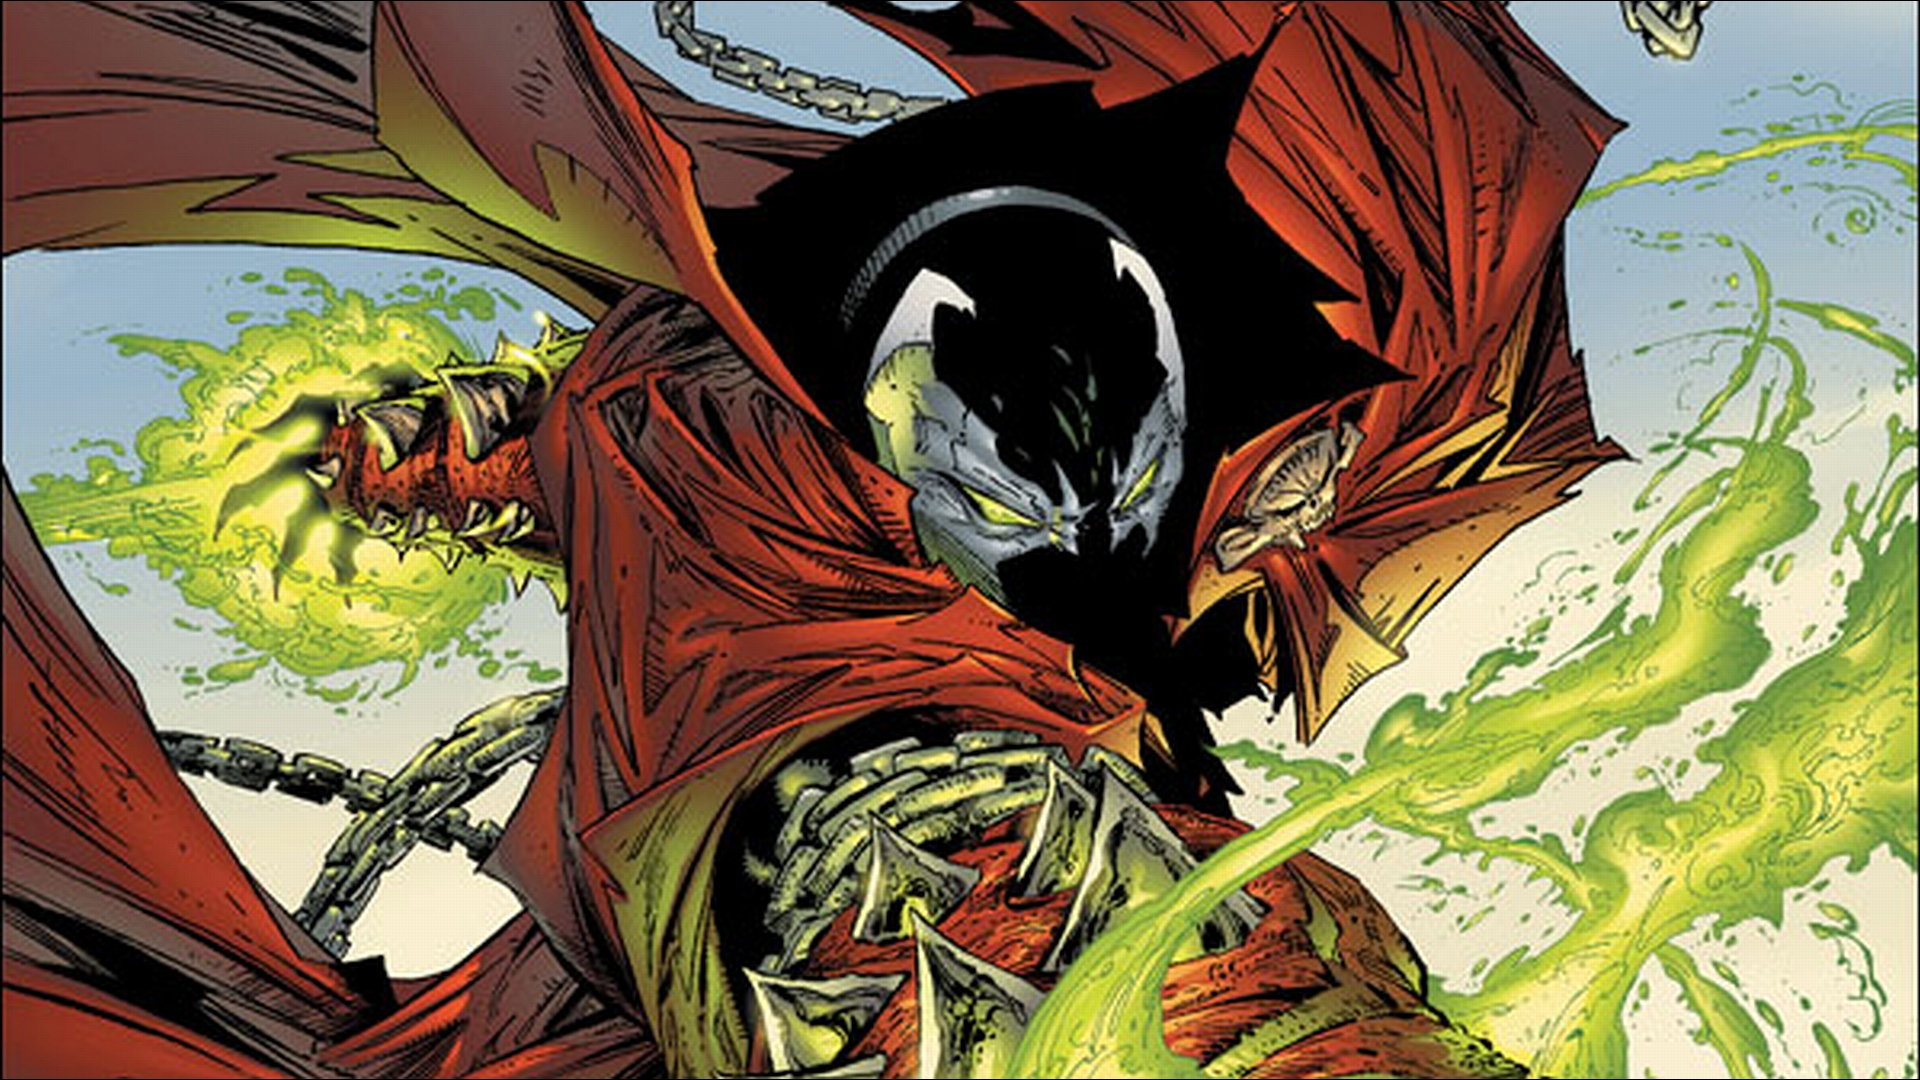 Spawn Computer Wallpapers, Desktop Backgrounds | 1920x1080 | ID:163455